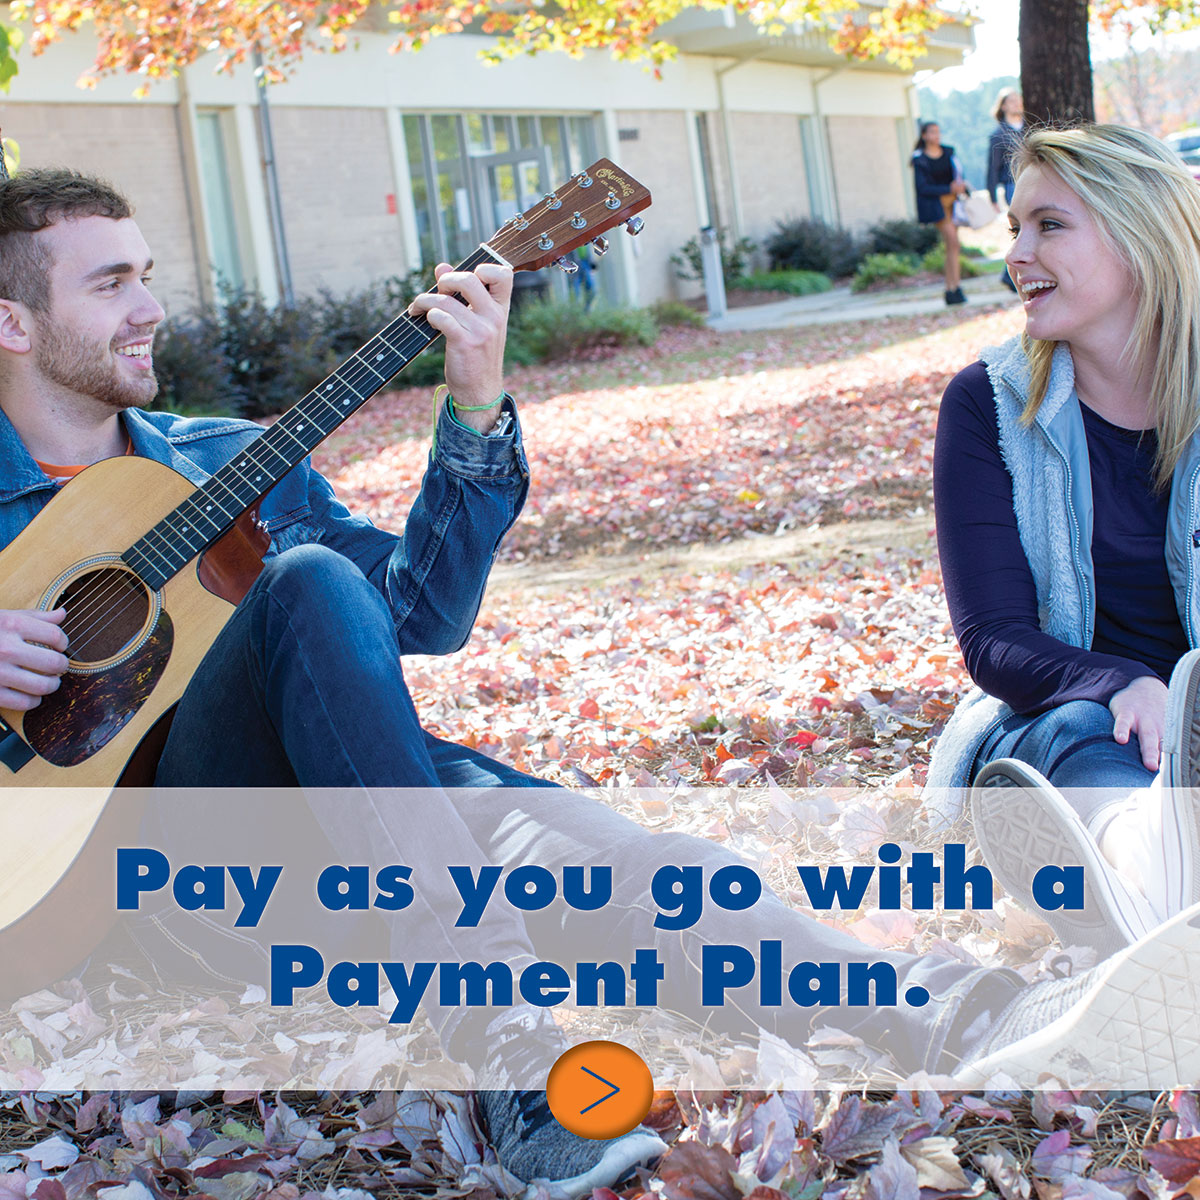 Pay as you go... Now you can pay as you go! Learn more about how you can pay as you go at GHC.